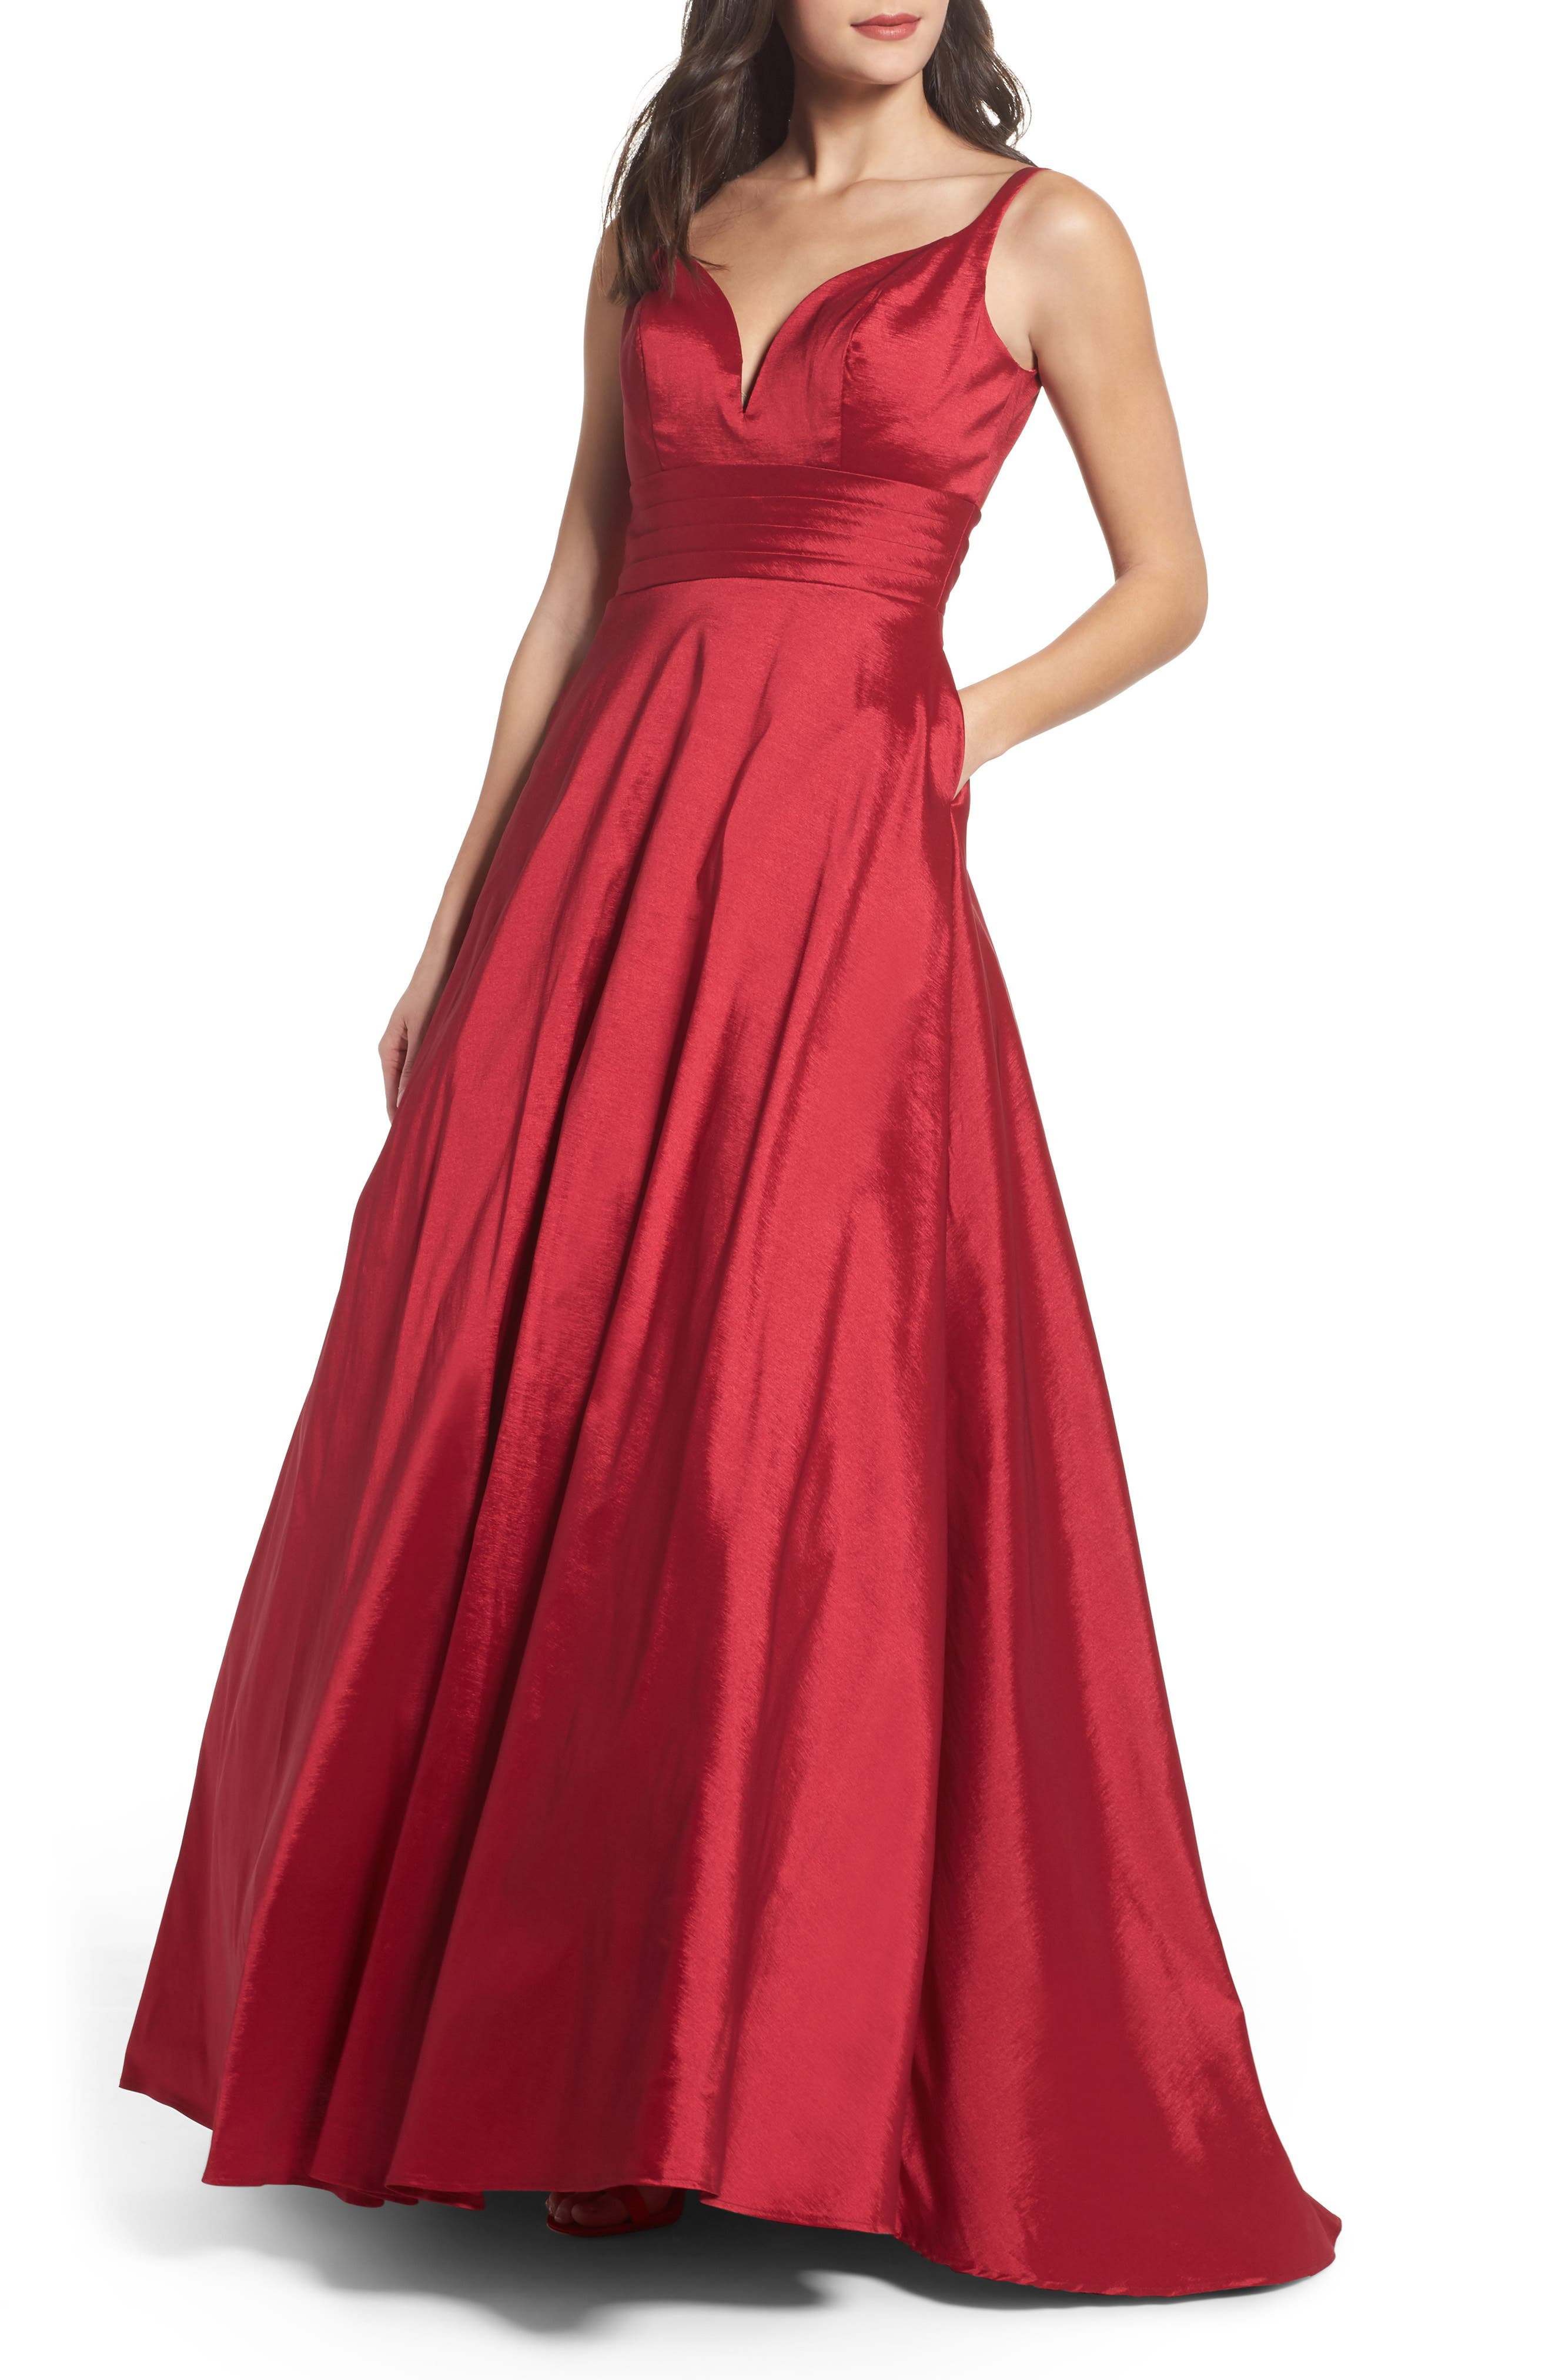 Image of Mac Duggal Plunge Neck Ballgown